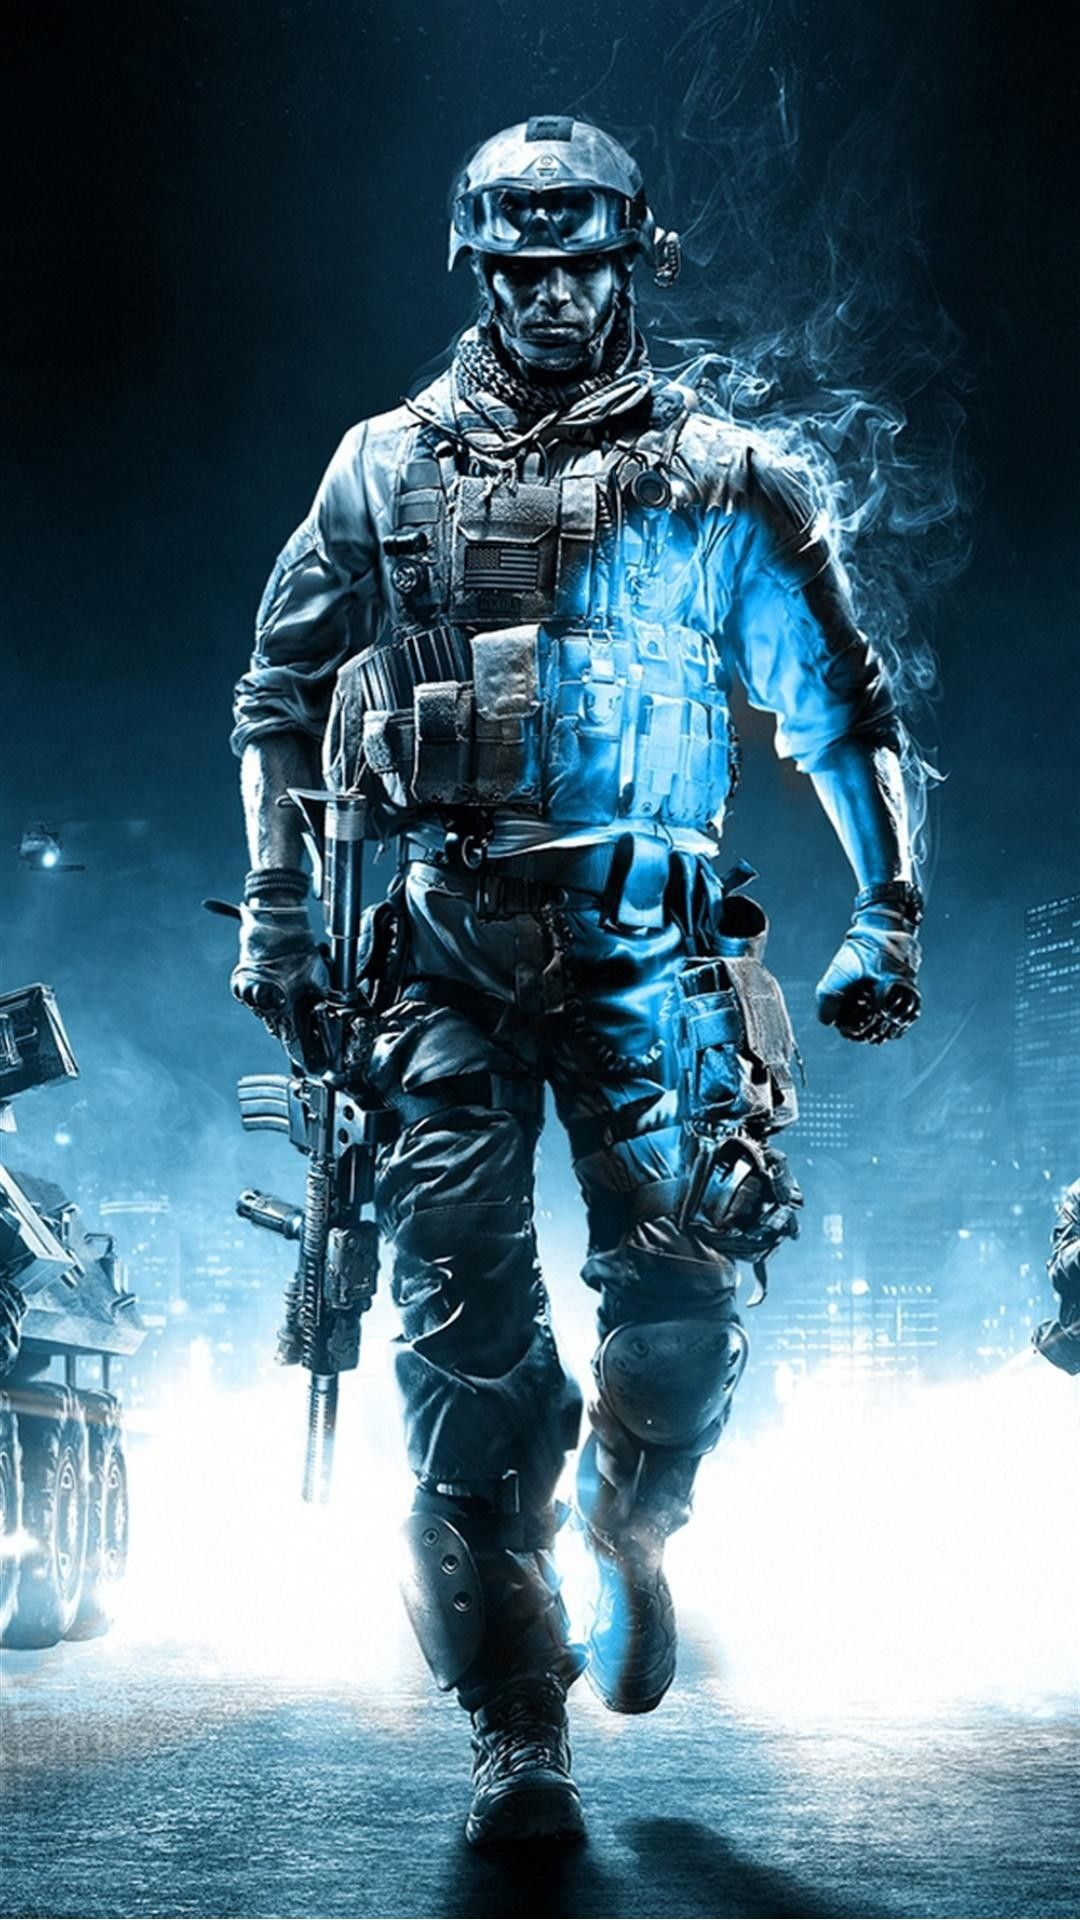 Call of Duty Ghosts Smartphone Wallpaper and Lockscreen HD Check more at https://